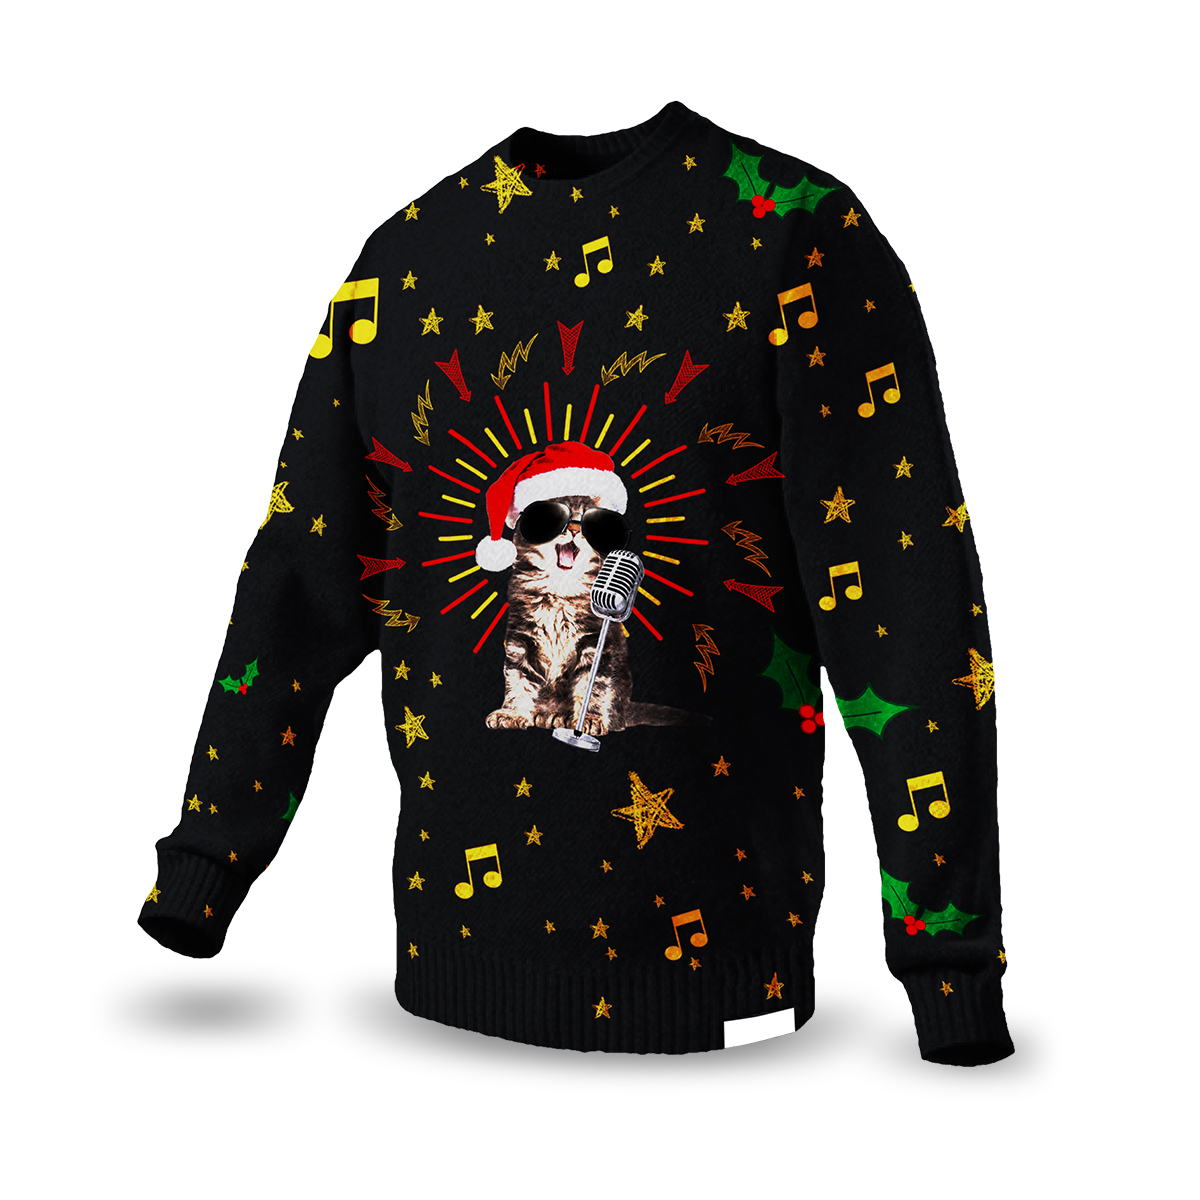 Celestial Knitted Christmas Sweater